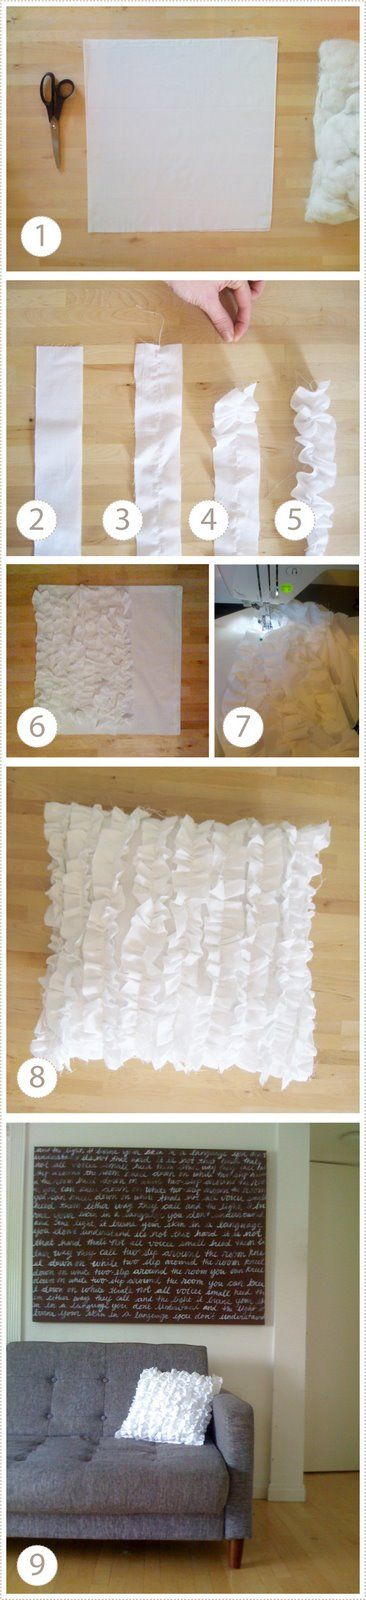 DIY ruffle pillows. For guest room?